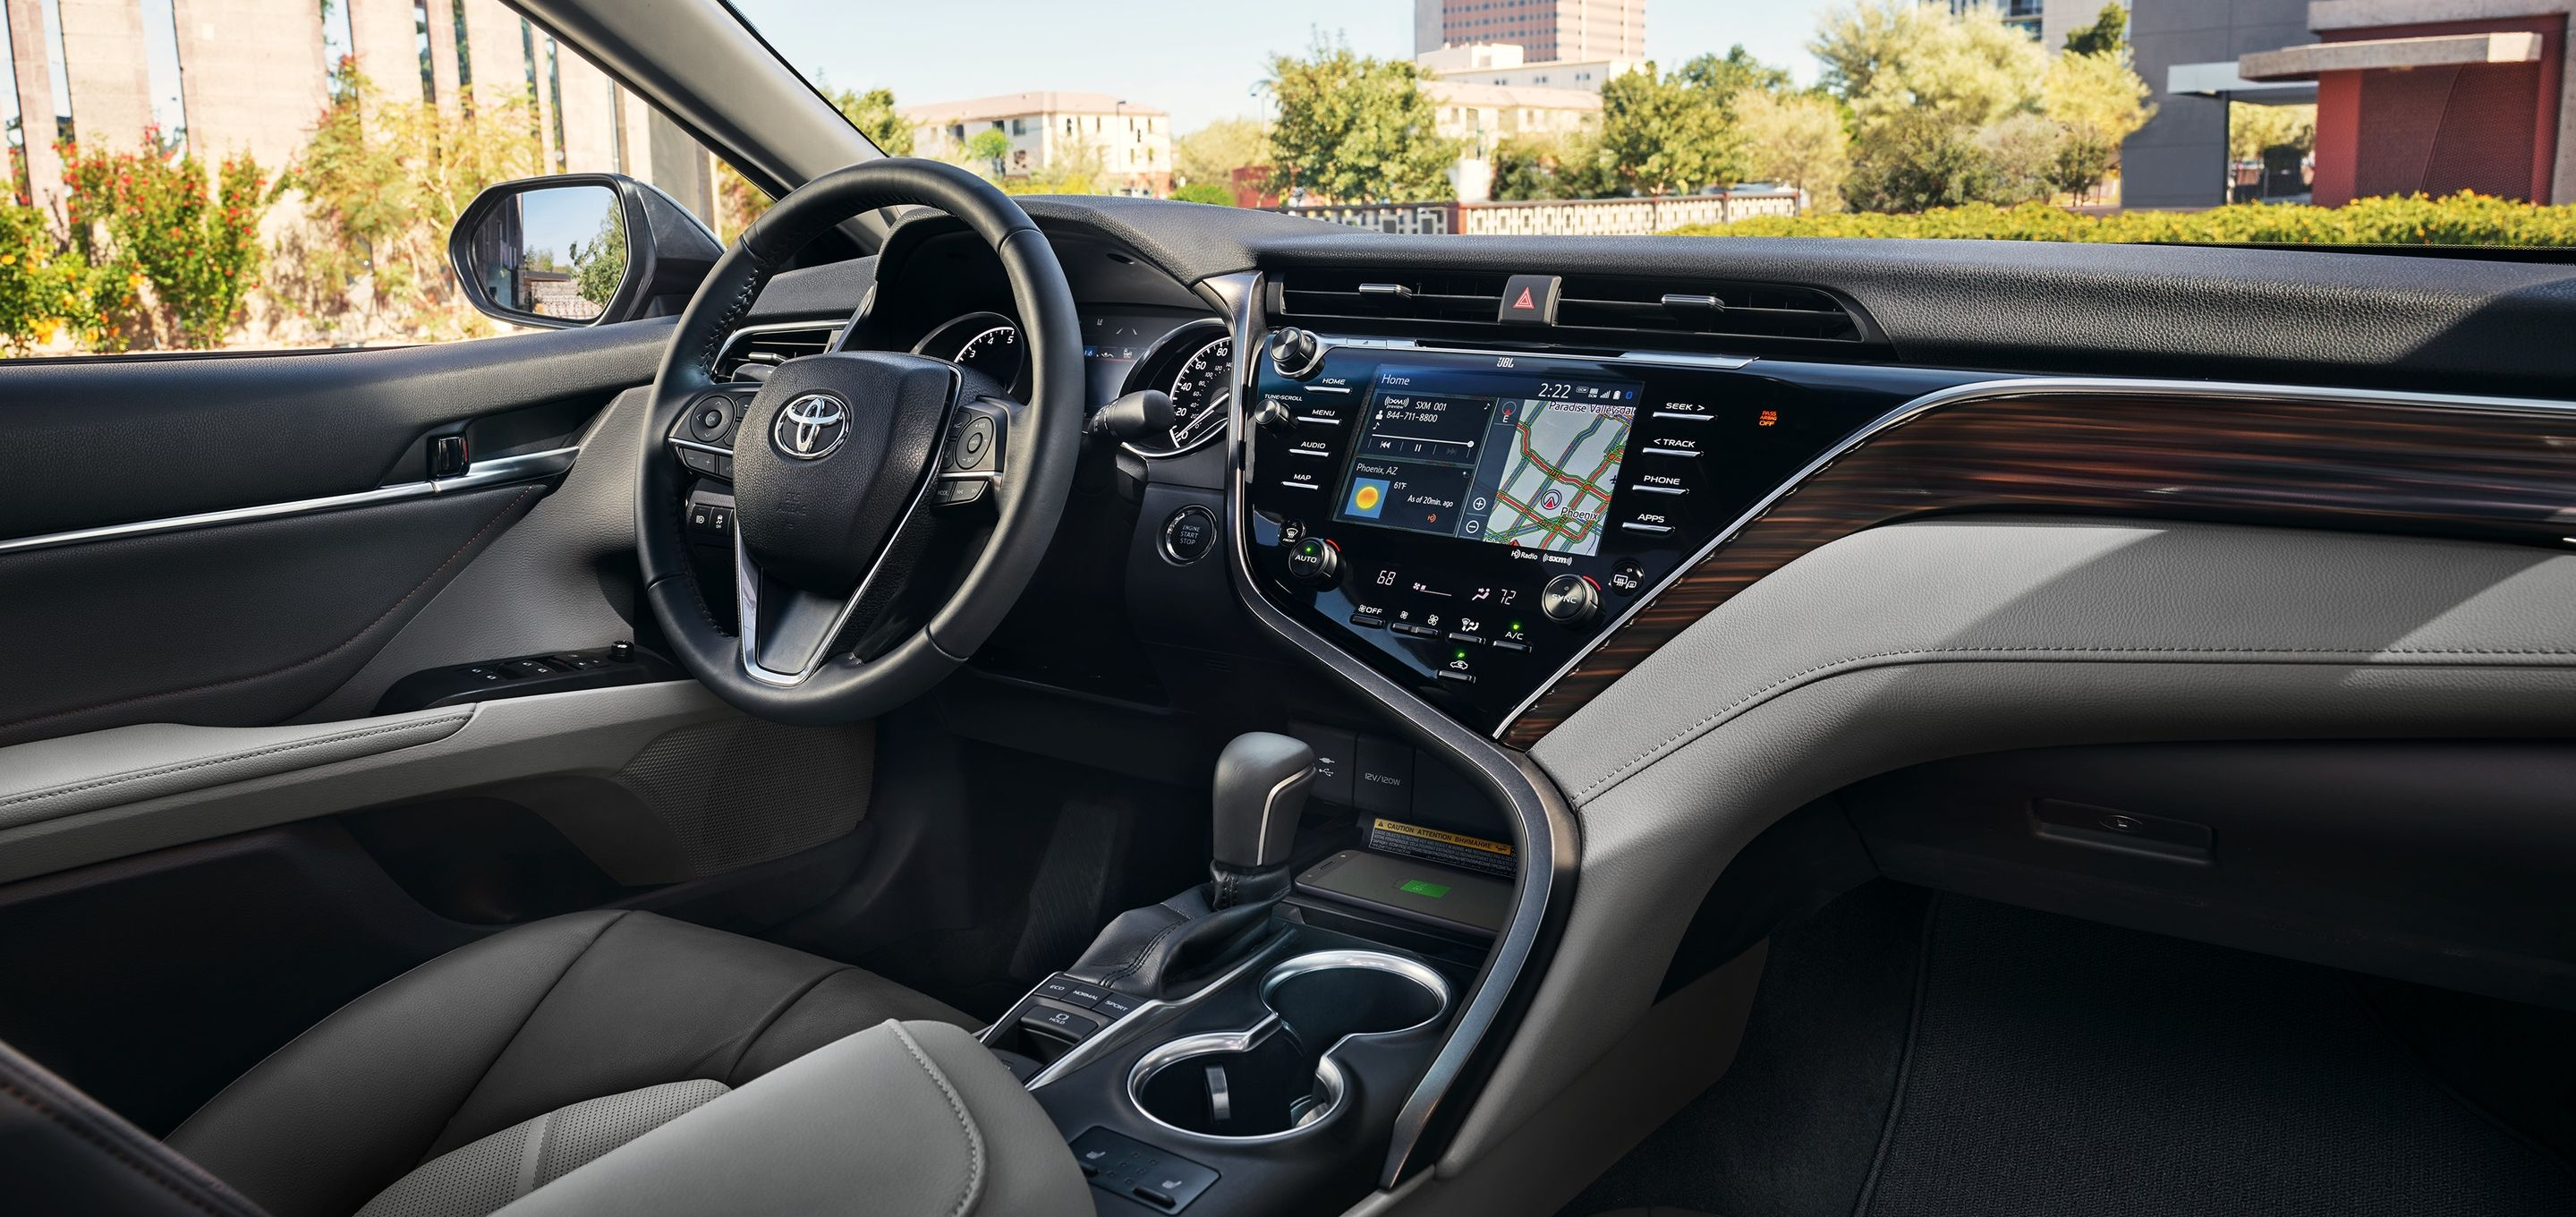 2019 Toyota Camry Leasing near San Jose, CA - Fremont Toyota